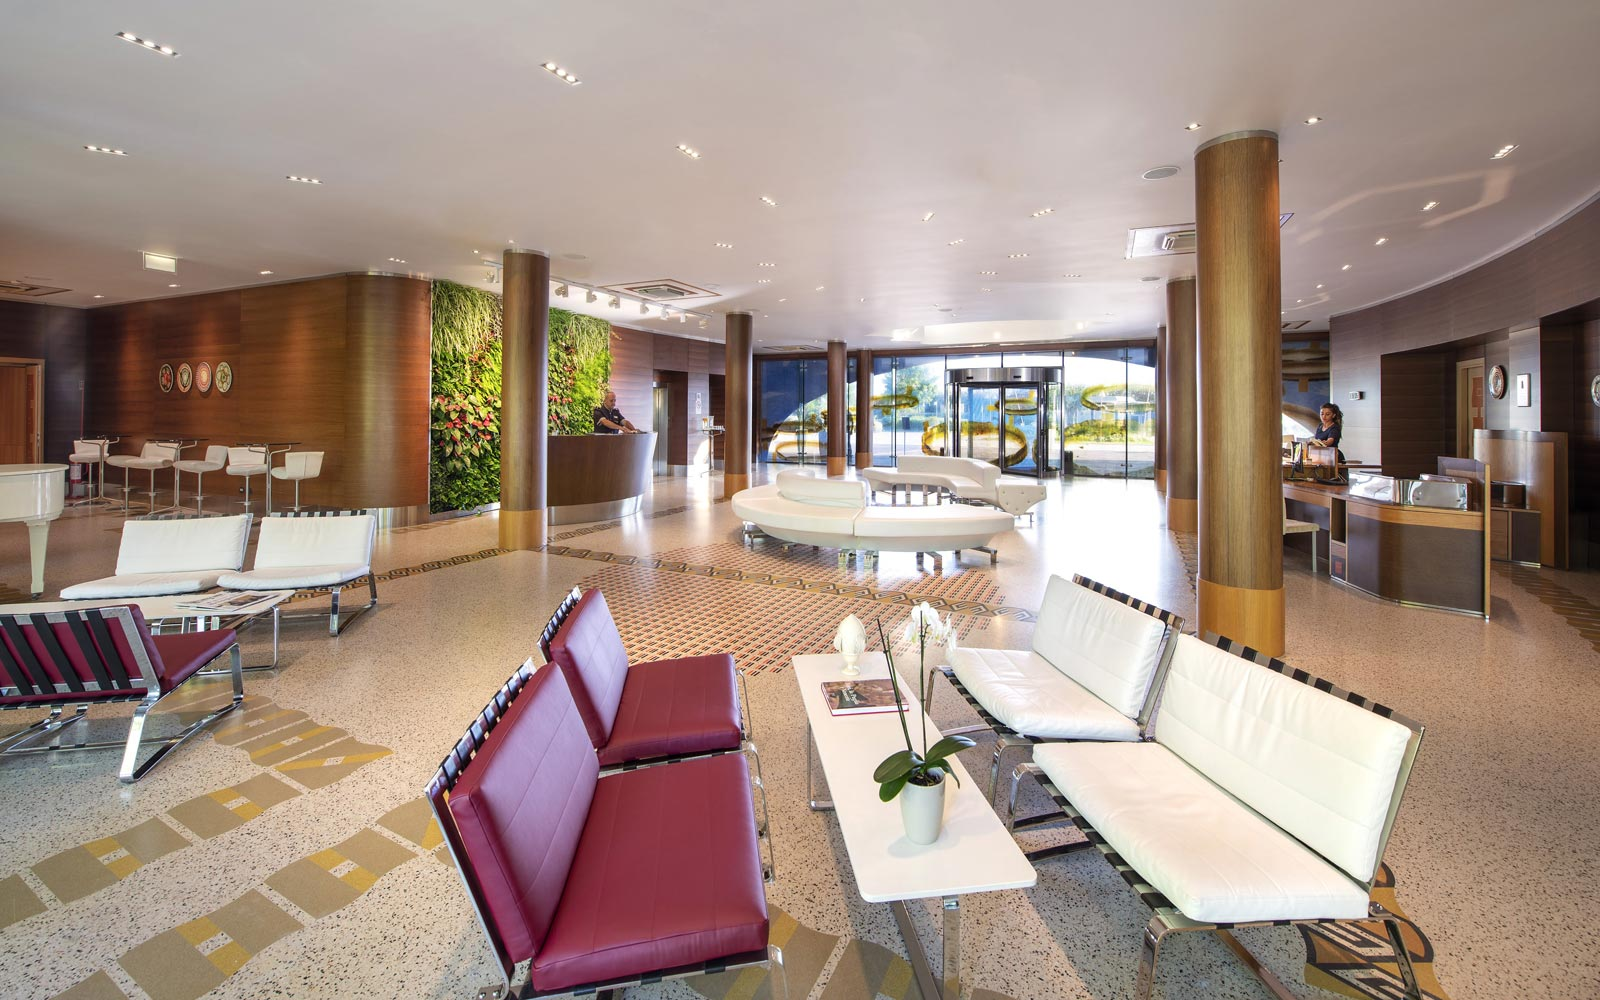 Kalidria Hotel & Thalasso Spa Reception Hall